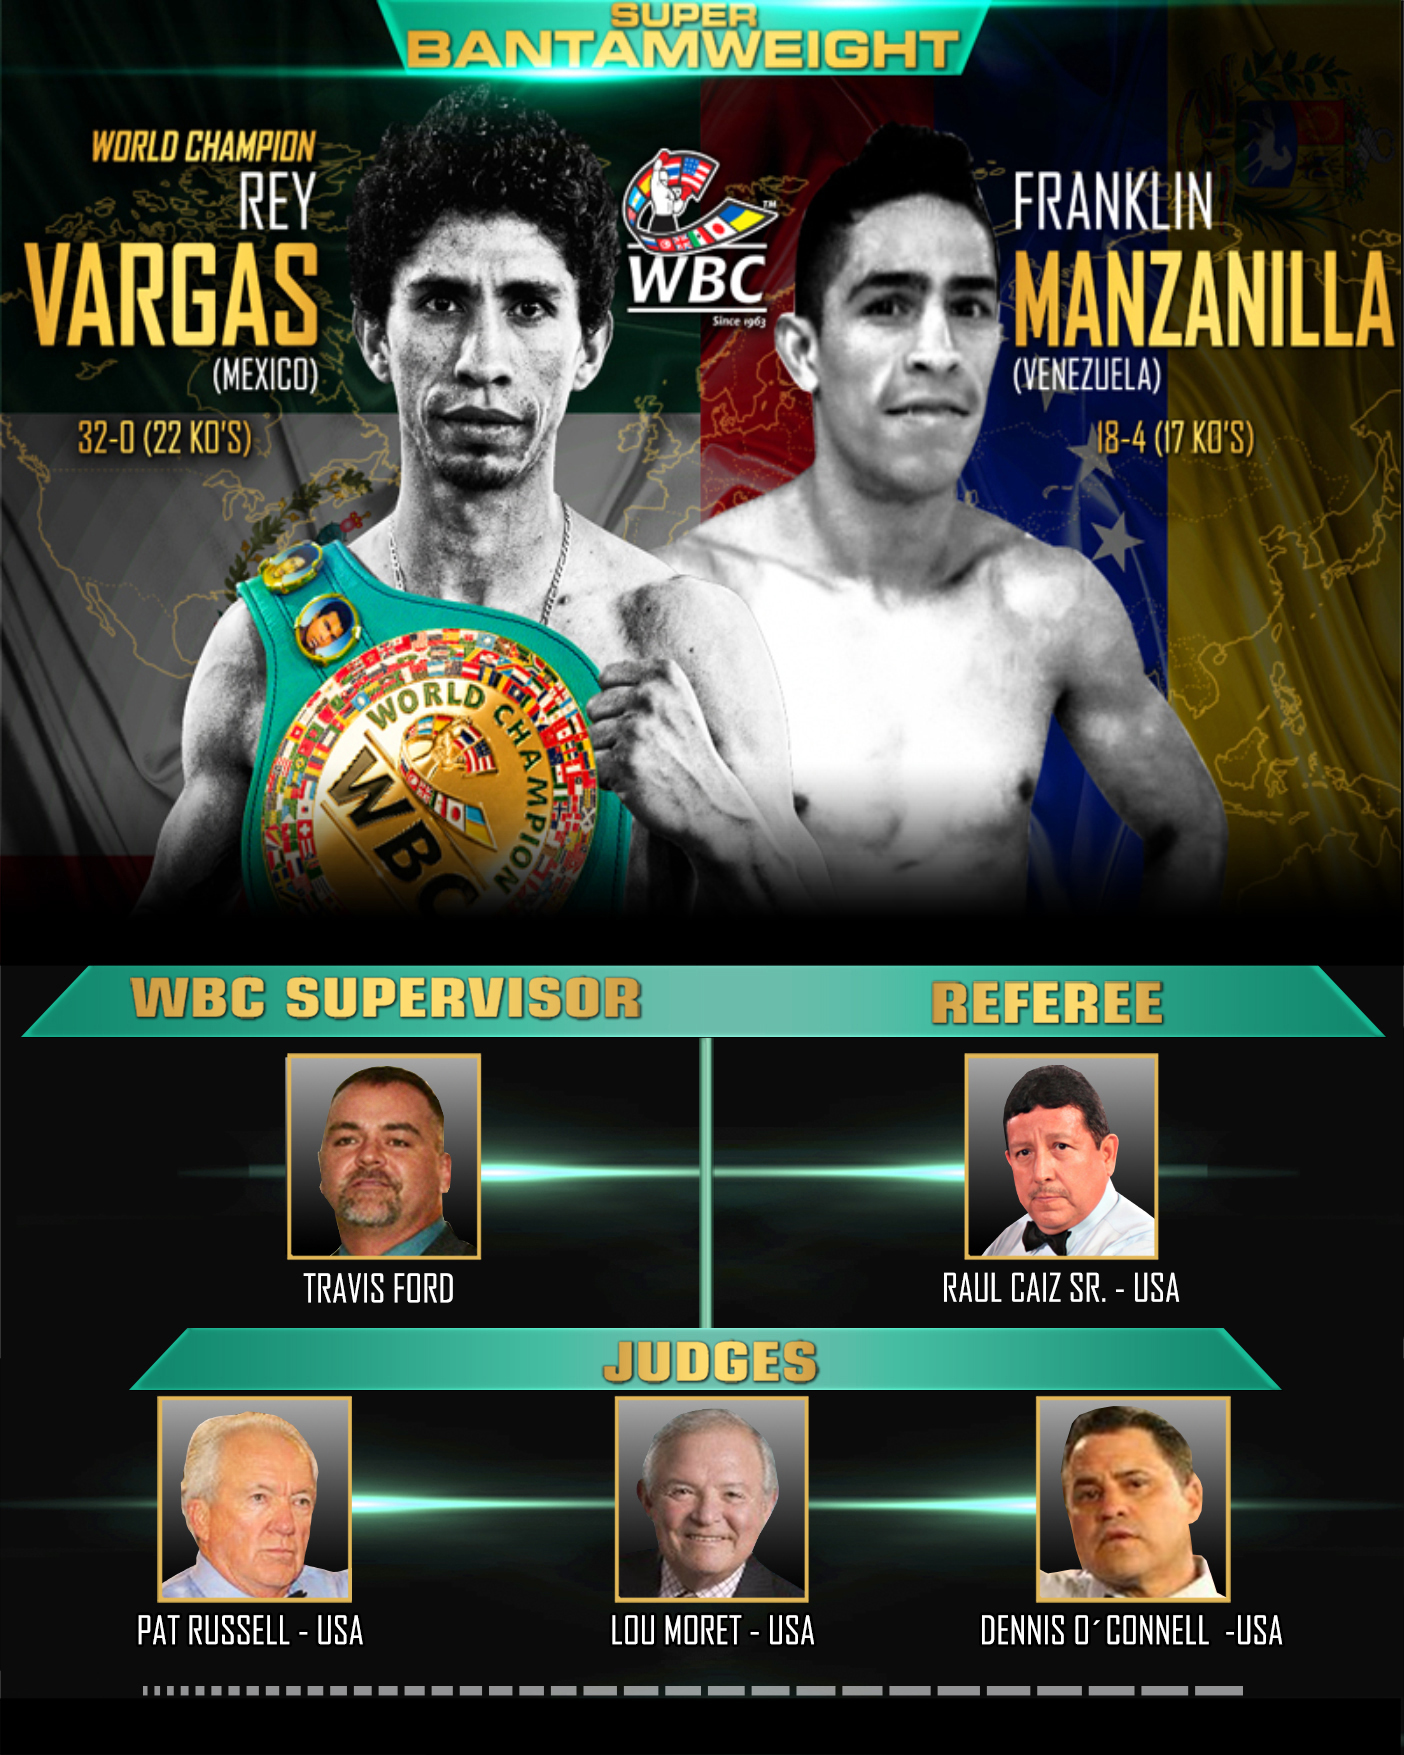 vargas-vs-manzanilla-9feb2019